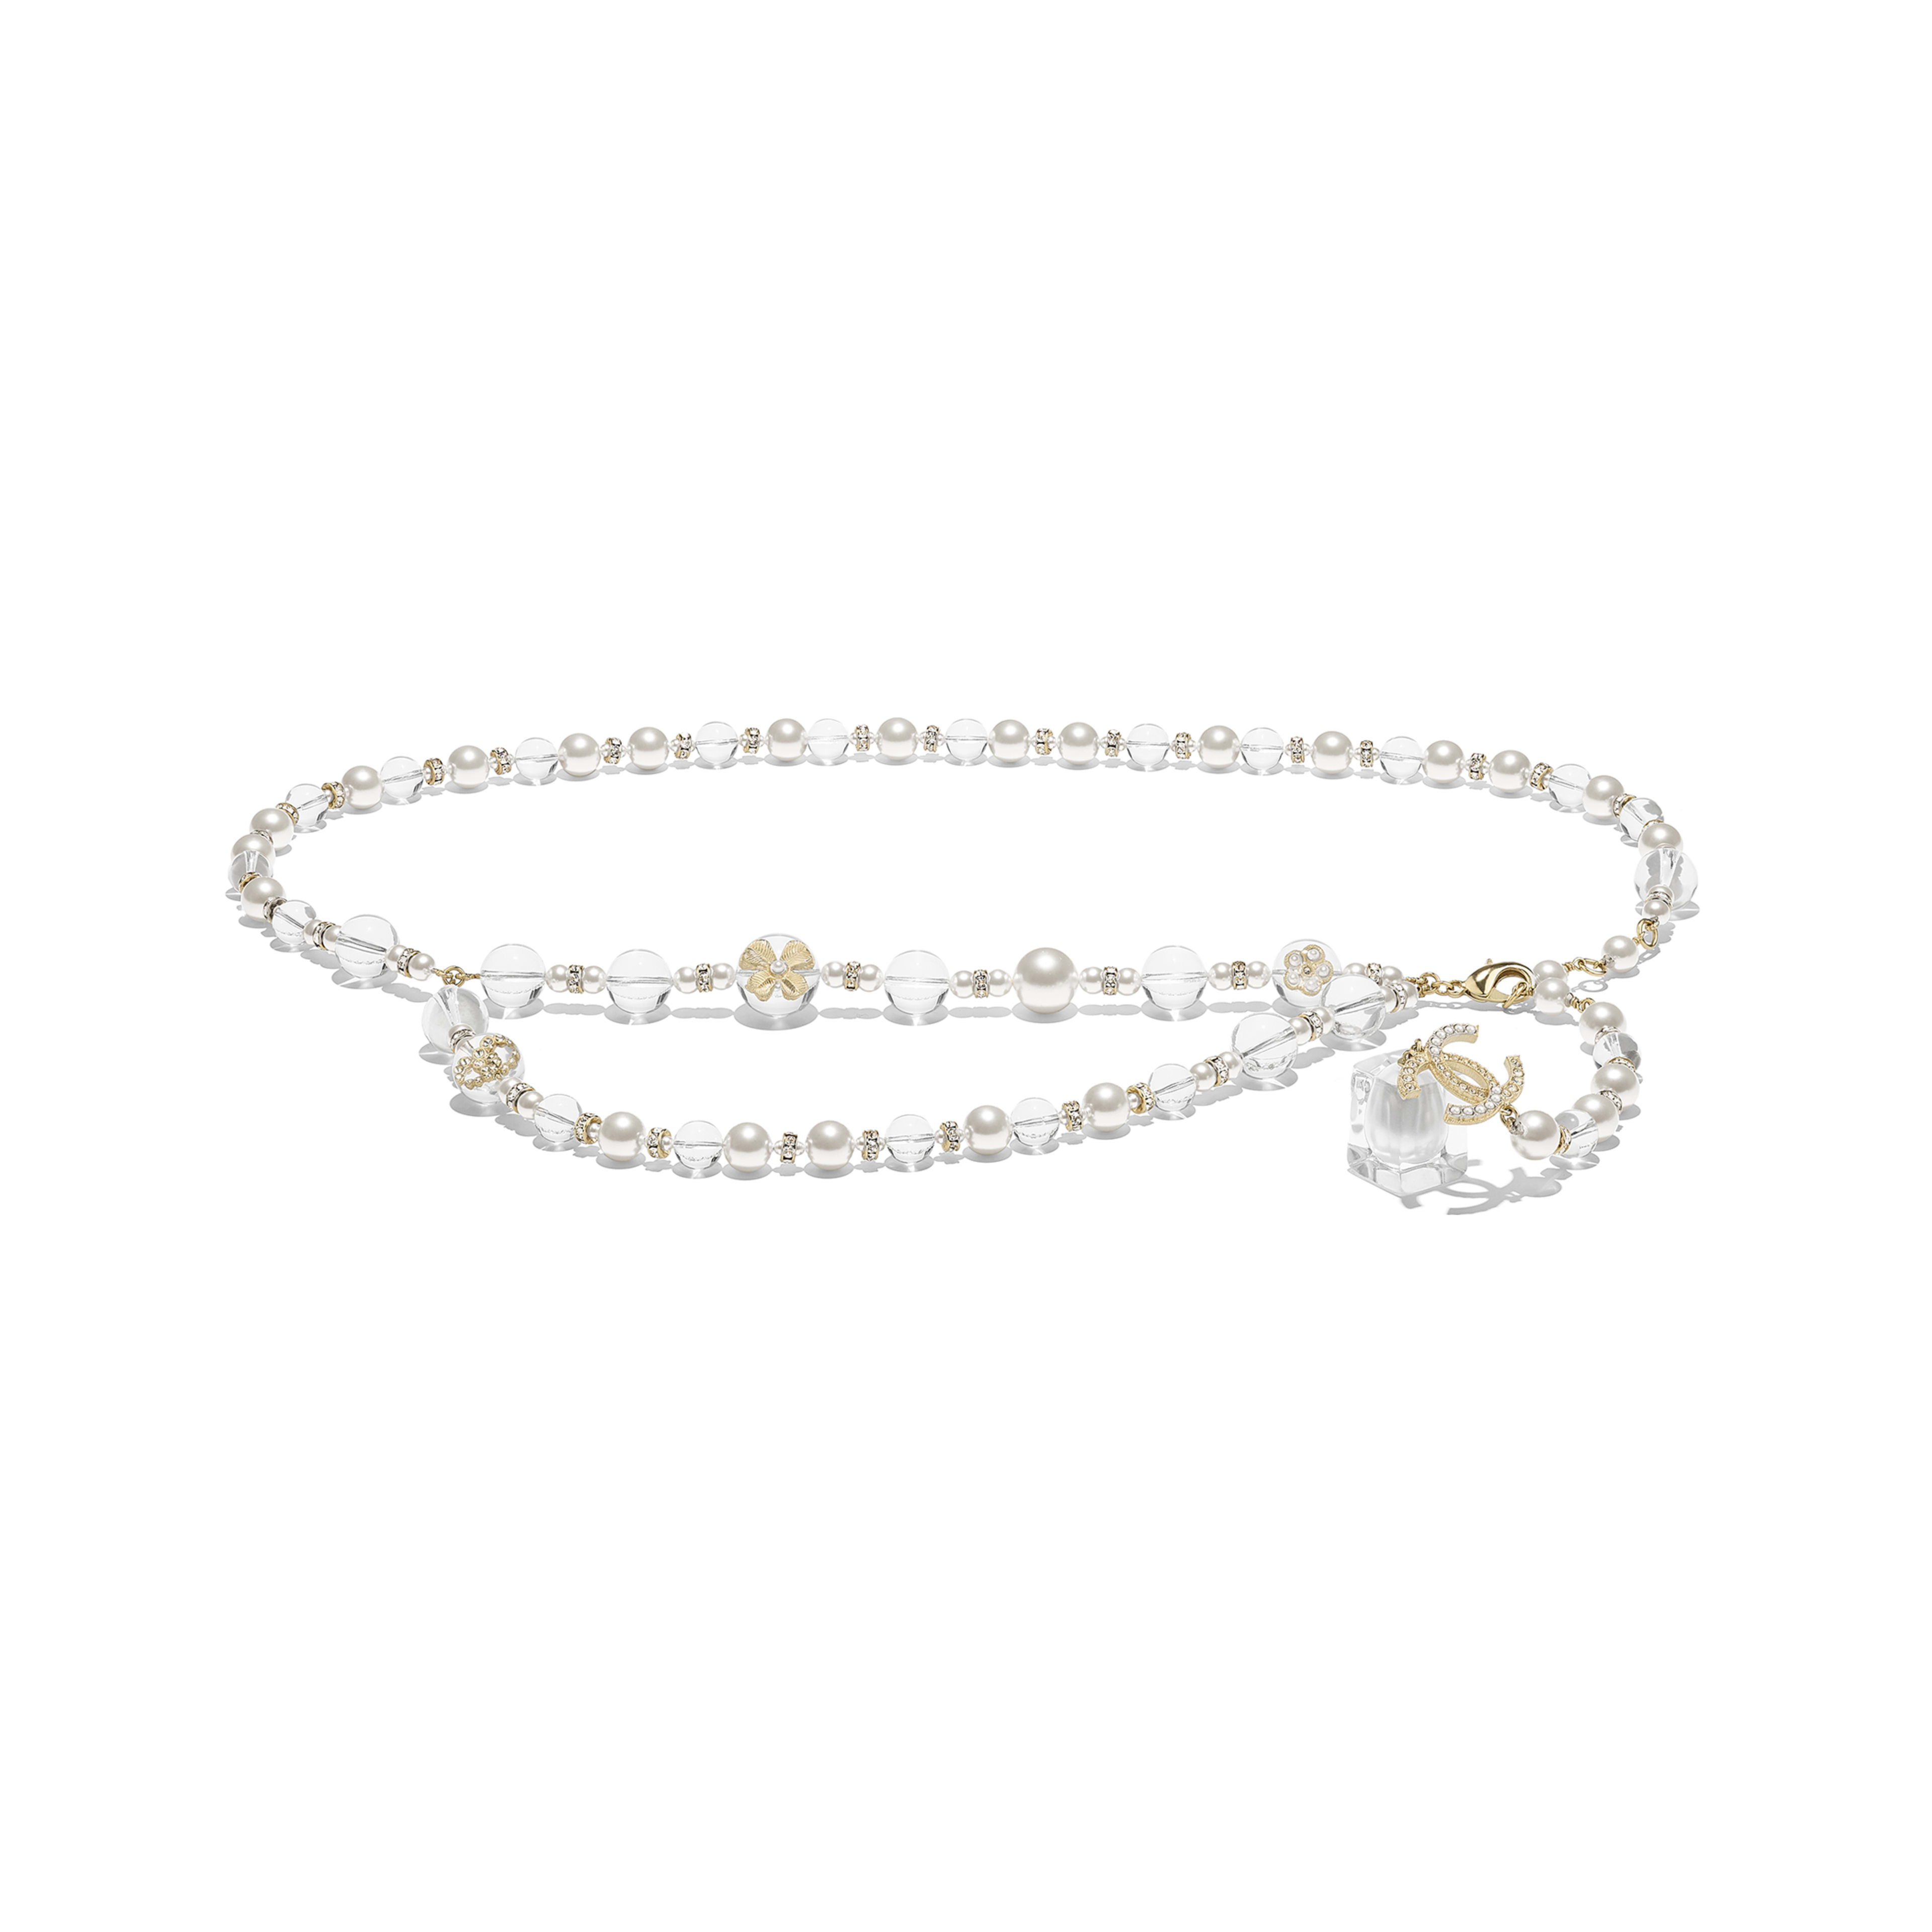 Belt - Gold, Pearly White, Crystal & Transparent - Metal, Glass Pearls, Imitation Pearls, Strass & Resin - Default view - see full sized version